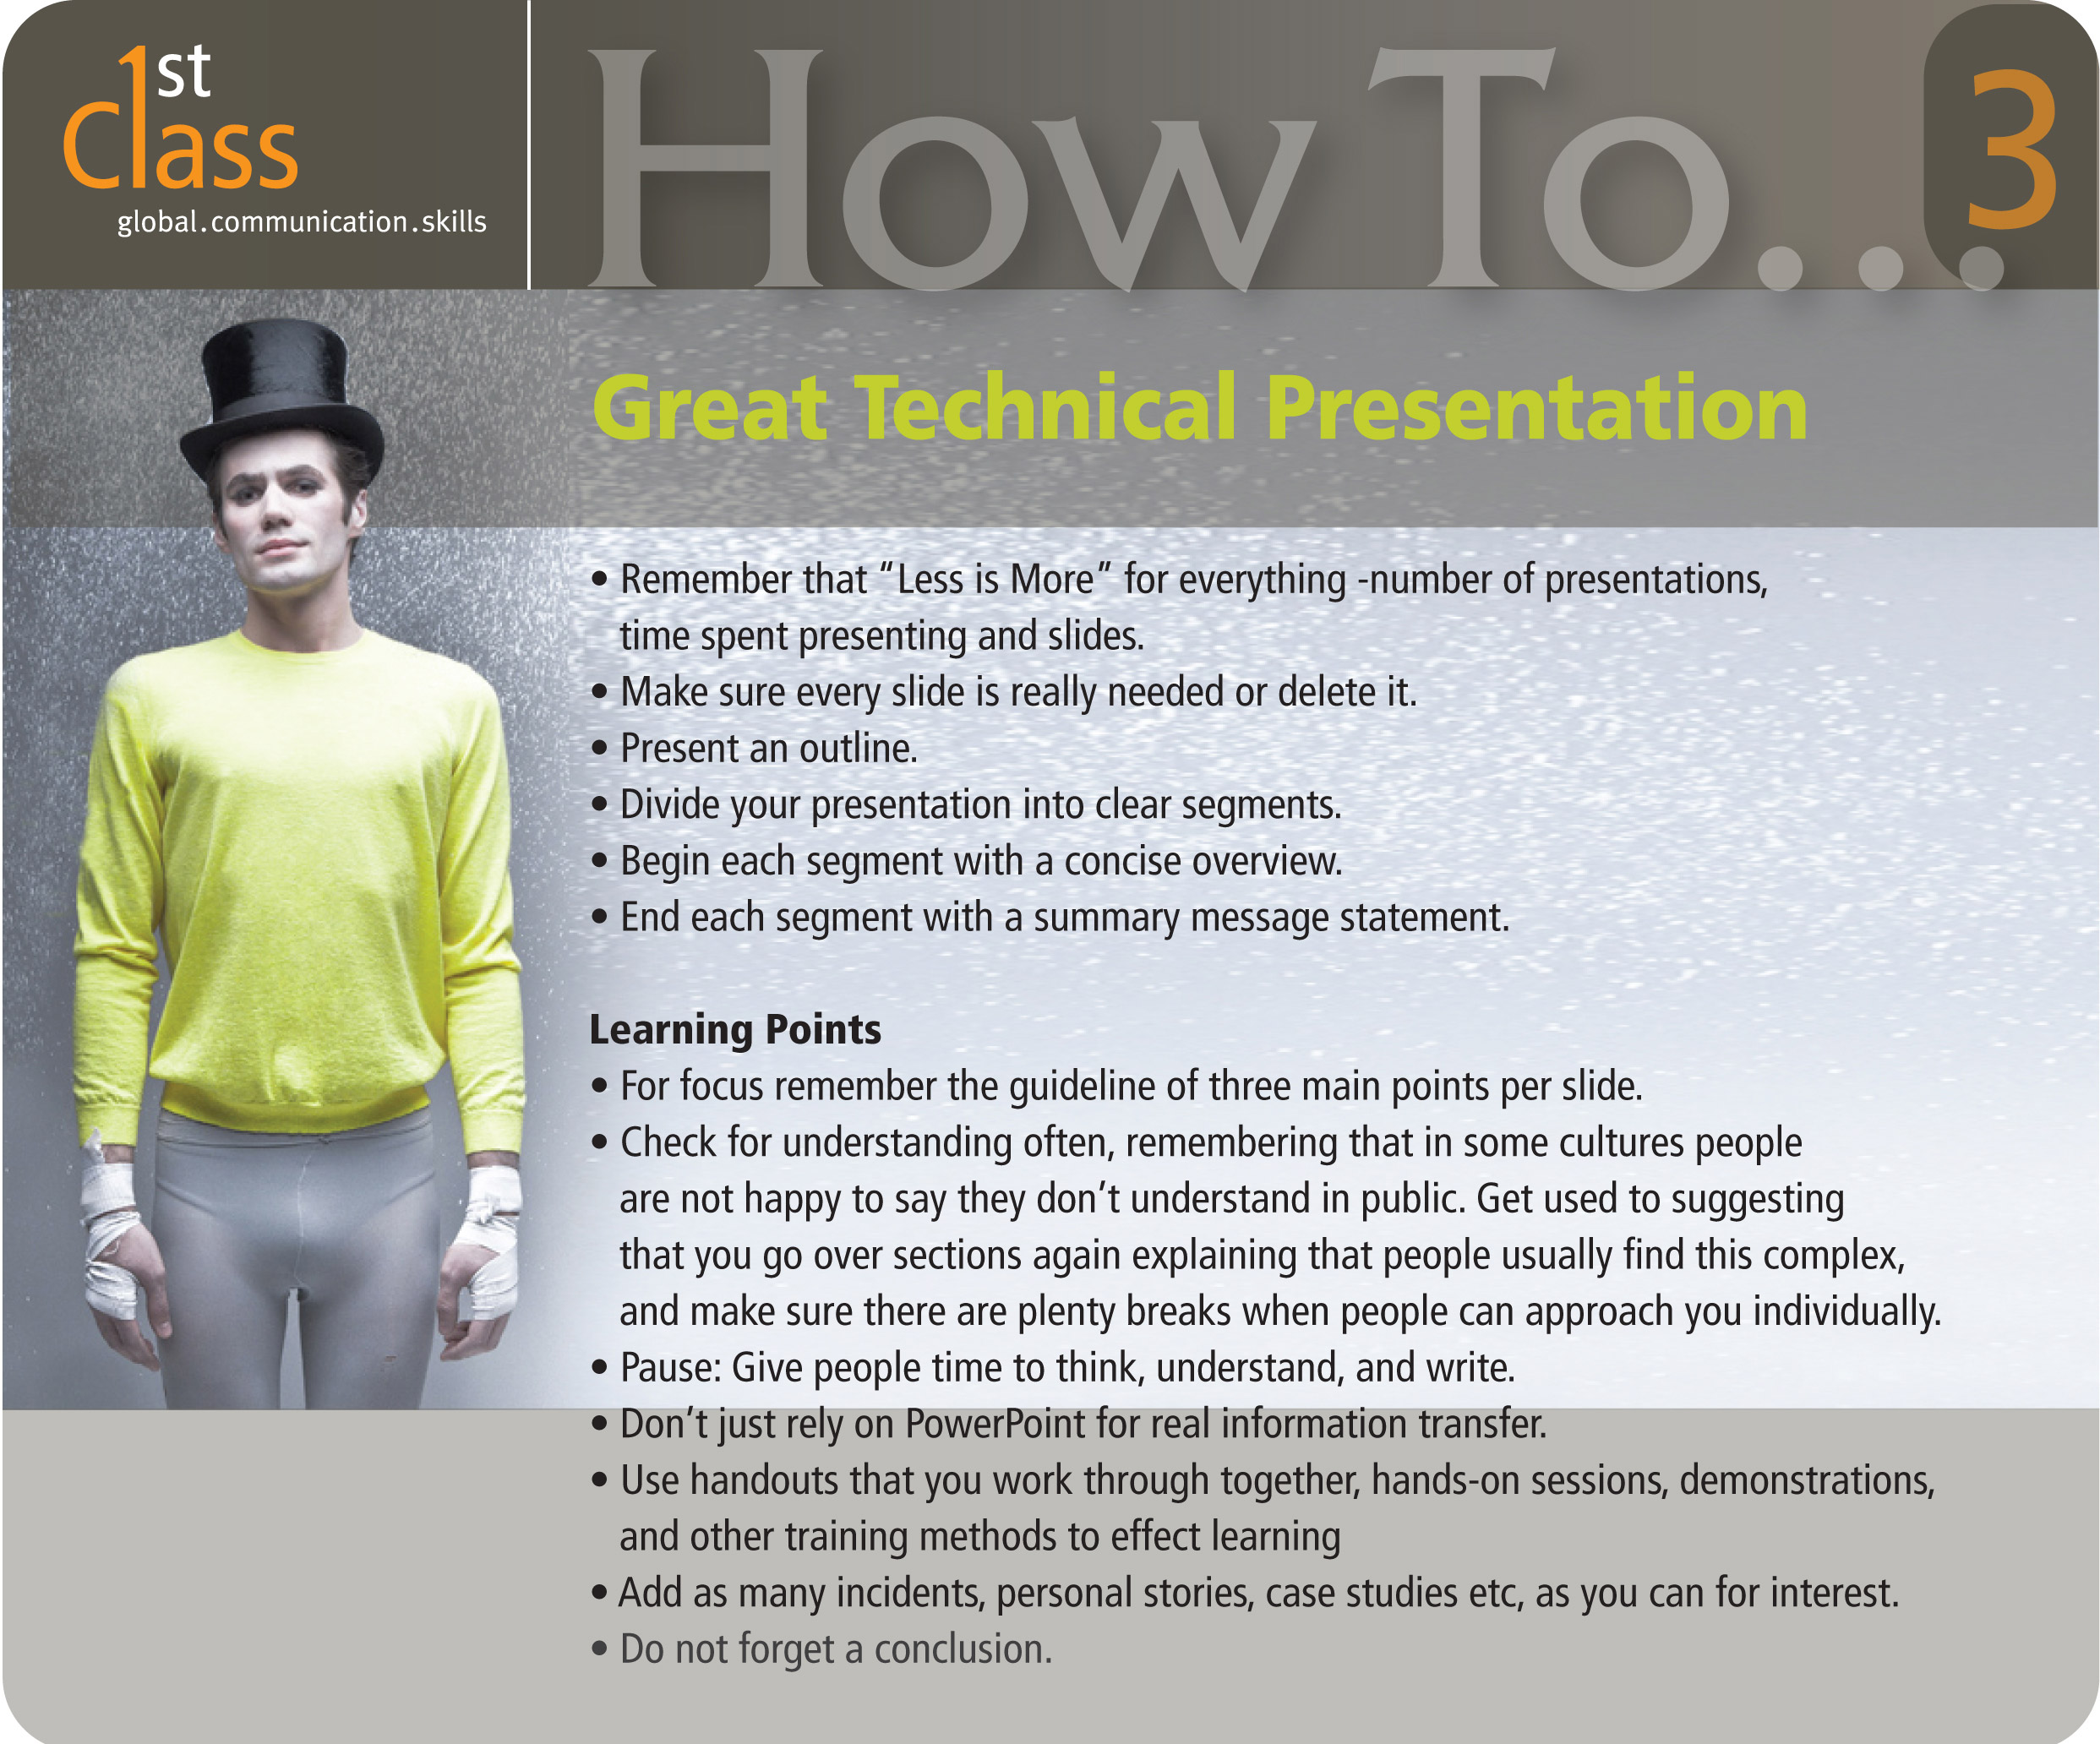 Technical presentation